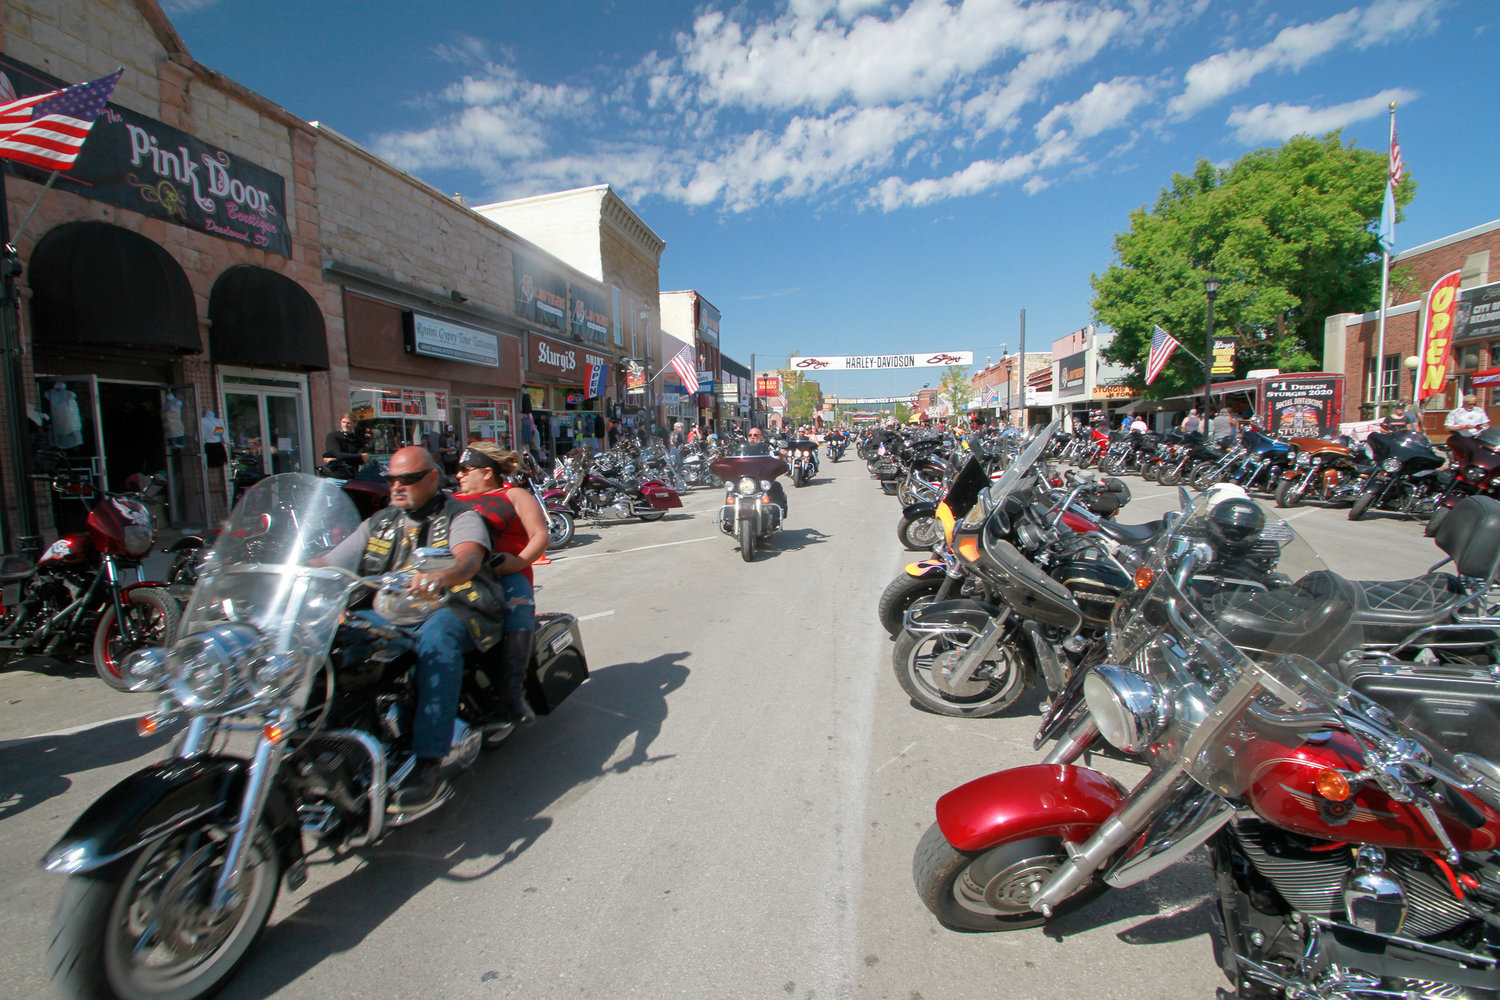 ROAD RALLY — Thousands of bikers rode through the streets for the opening day of the 80th annual Sturgis Motorcycle rally Friday in Sturgis, S.D. Some experts fear the large number of visitors may worsen the coronavirus in that state.